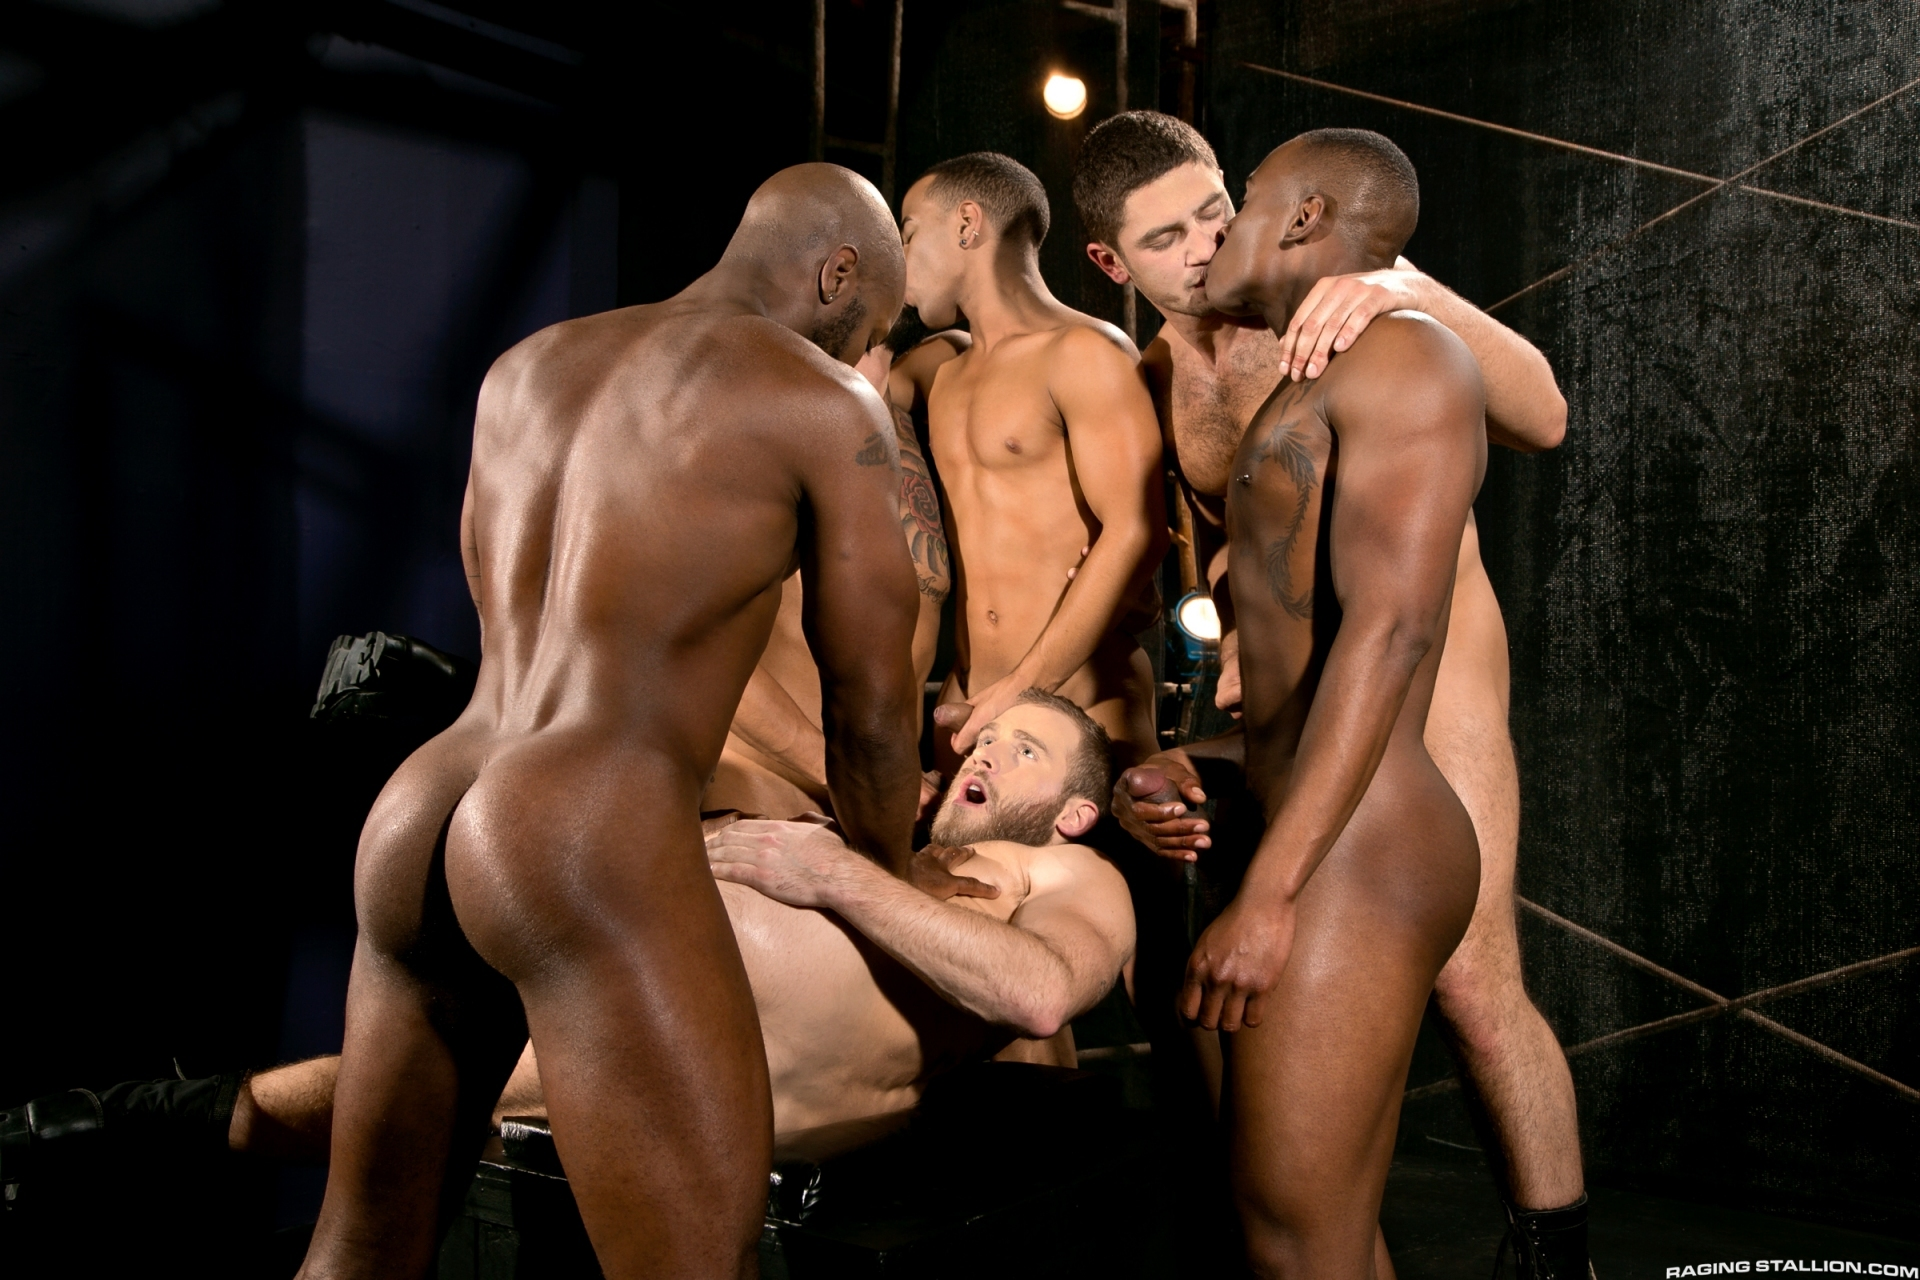 Shawn Wolfe in a gangbang orgy with Tyson Tyler, Boomer Banks, Dato Foland, Race Cooper and Trelino for the gay porn film Into Darkness by Raging Stallion.